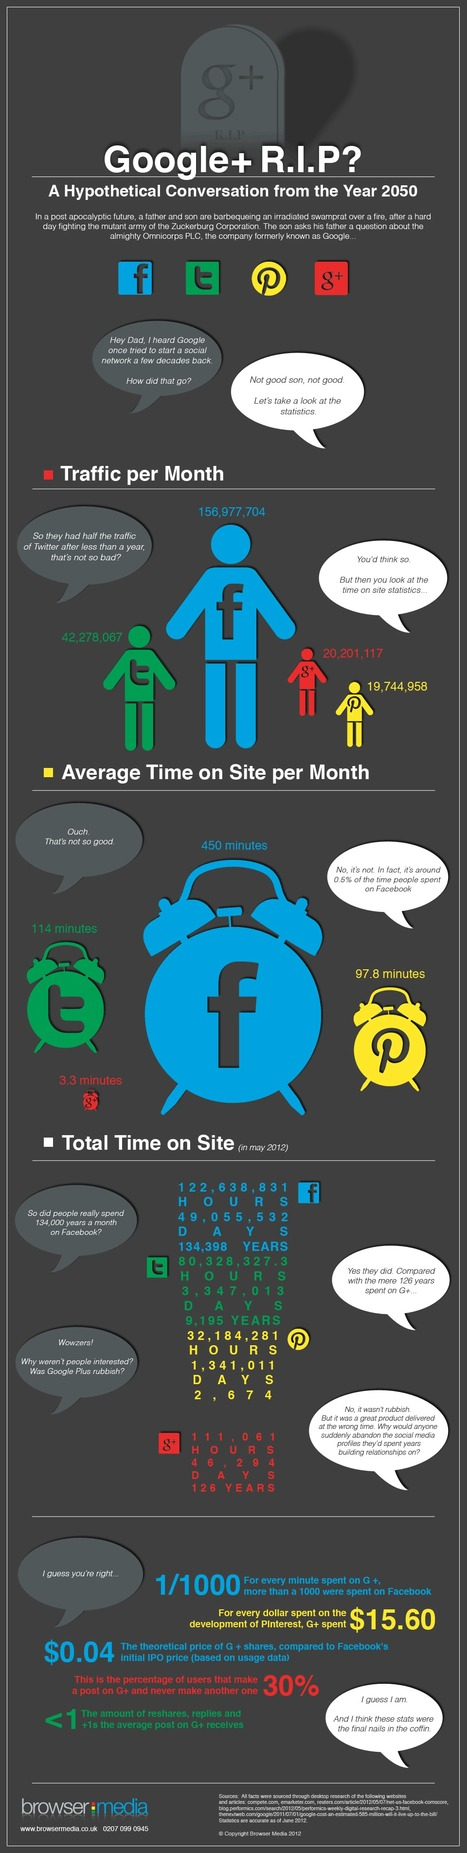 Is Google+ A Failure? [Infographic] | New Digital Media | Scoop.it